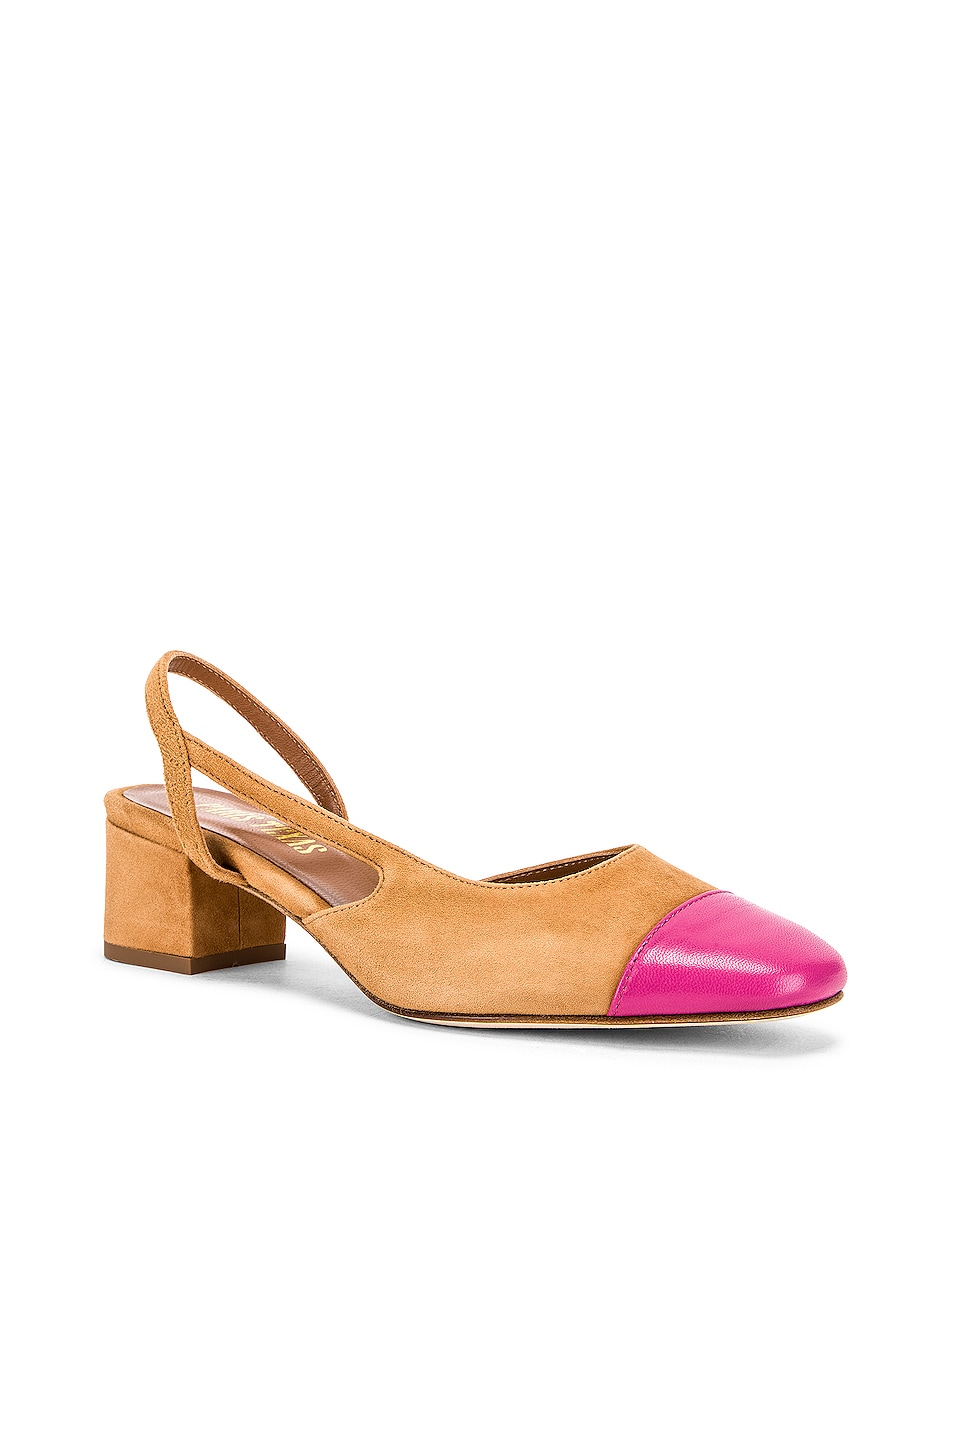 Image 2 of Paris Texas Suede Sling Back in Tan & Pink